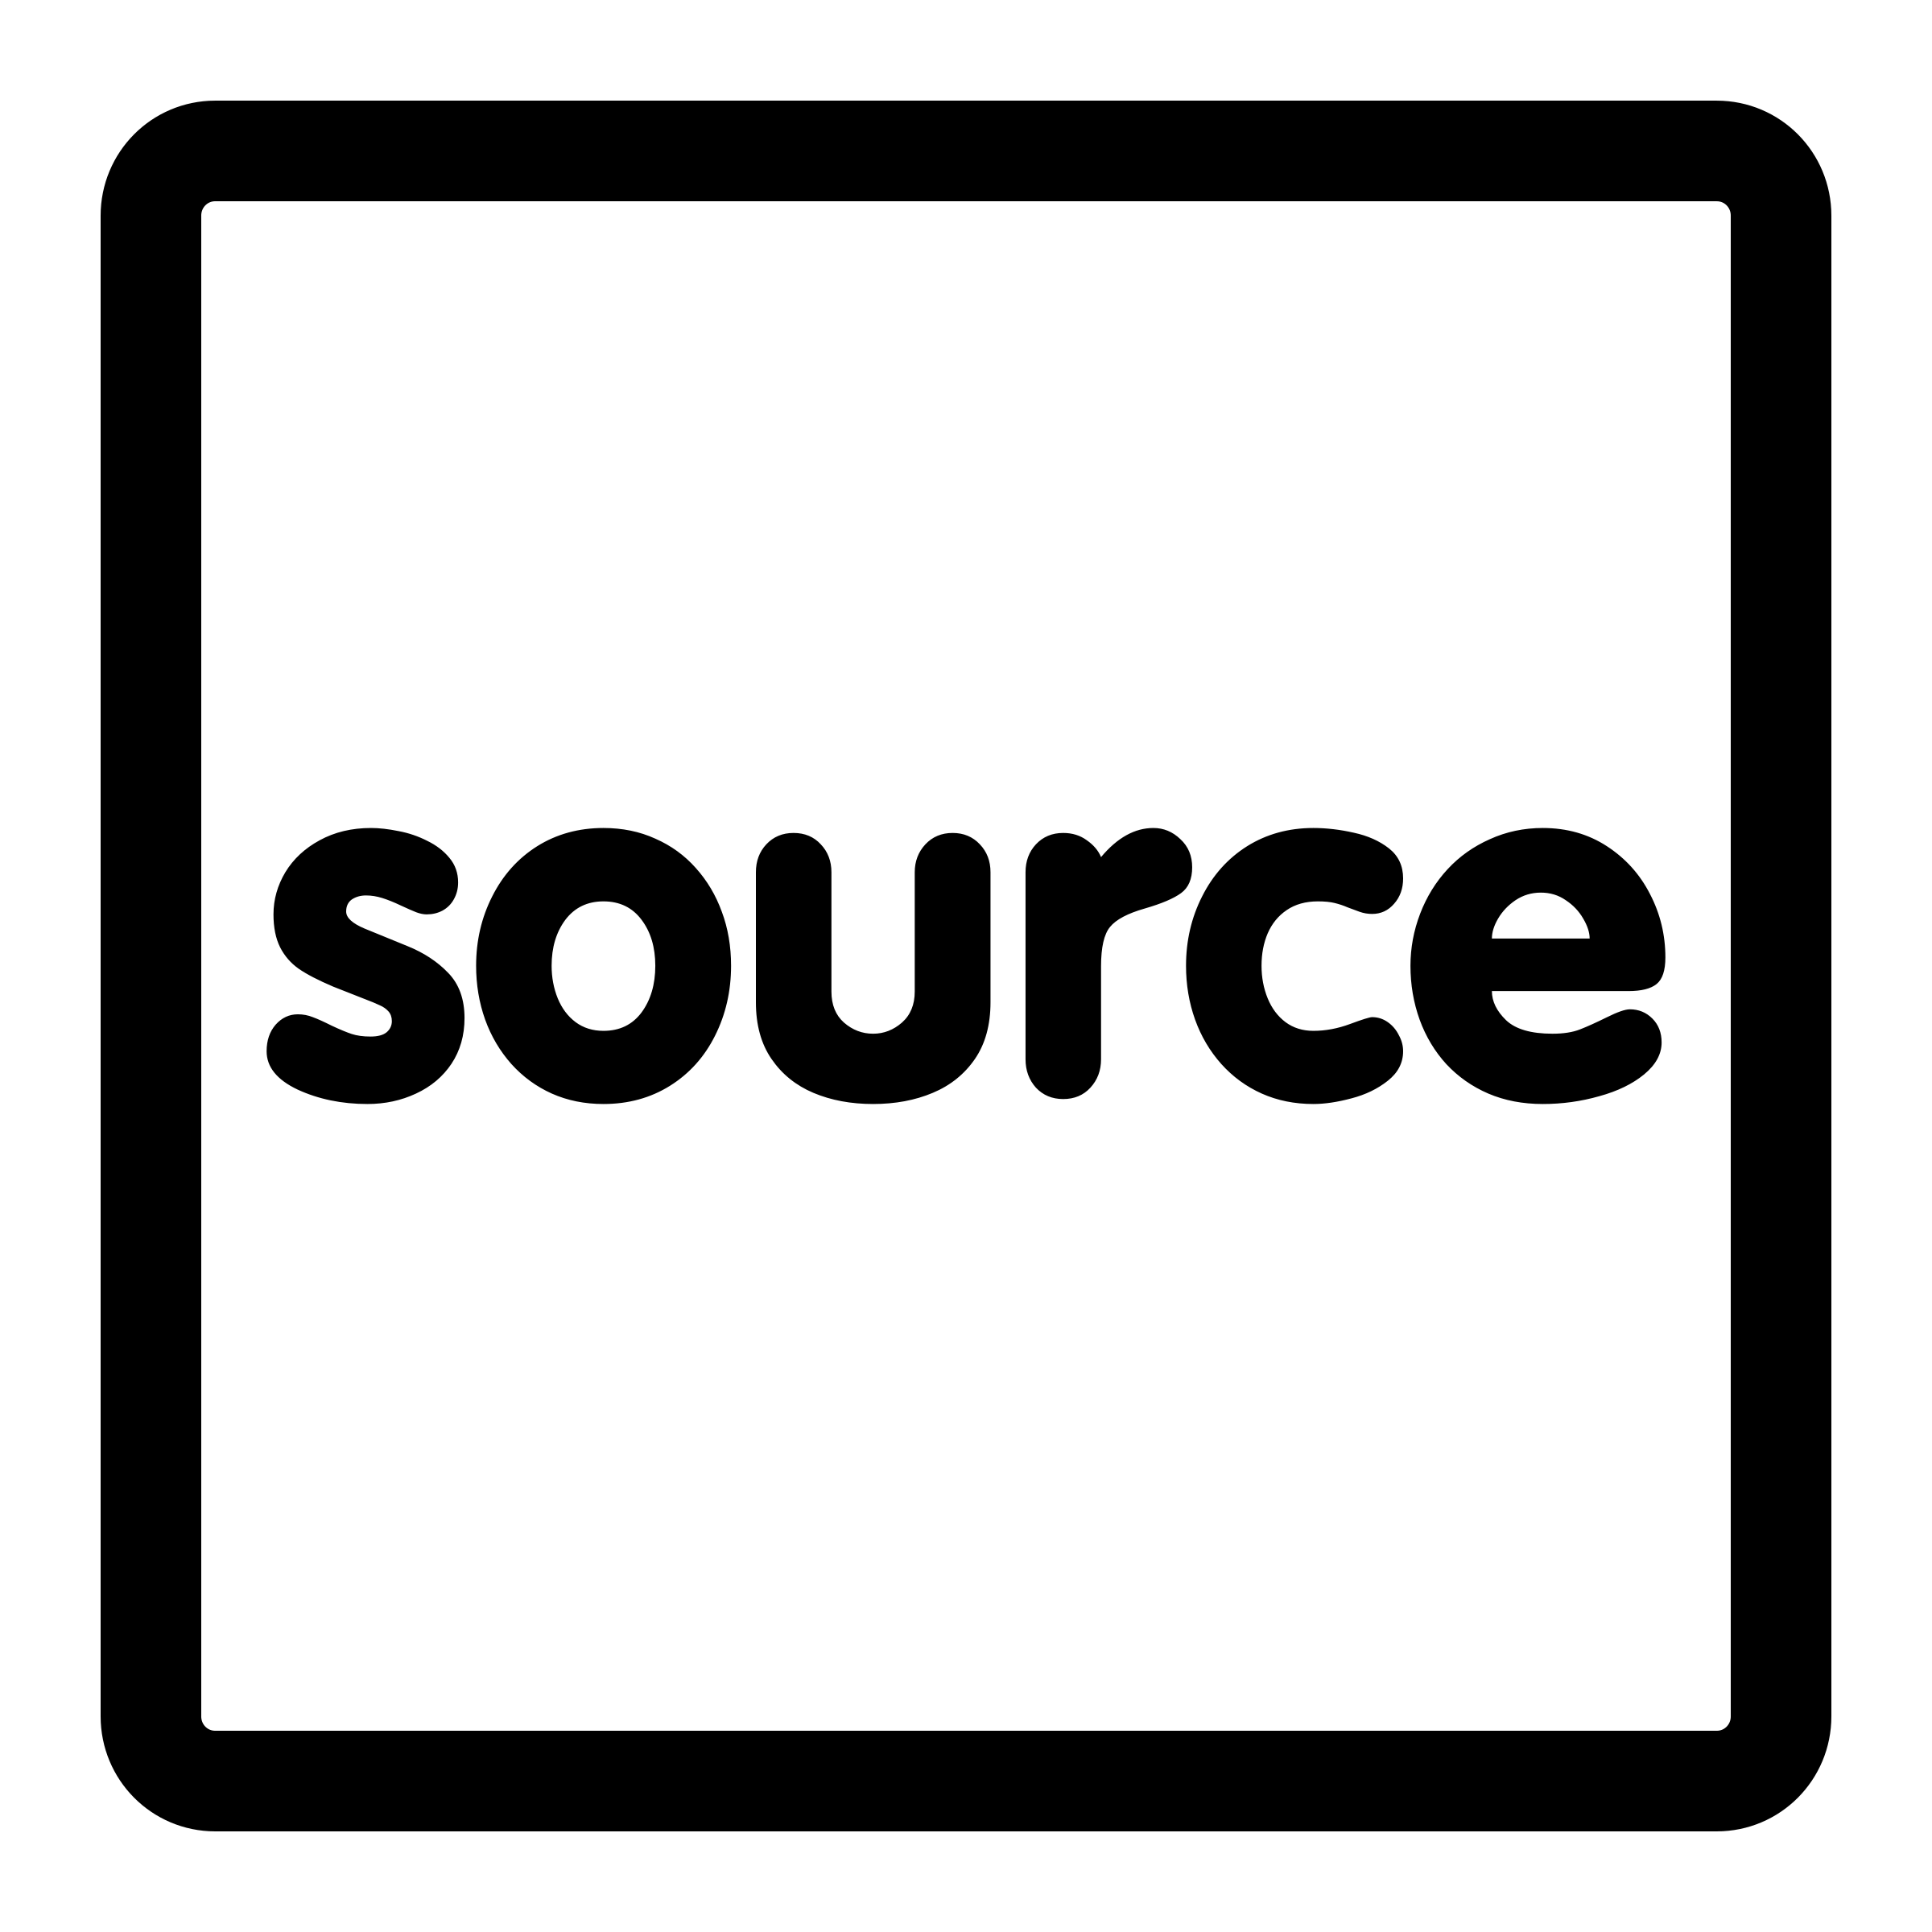 mono source by dannya